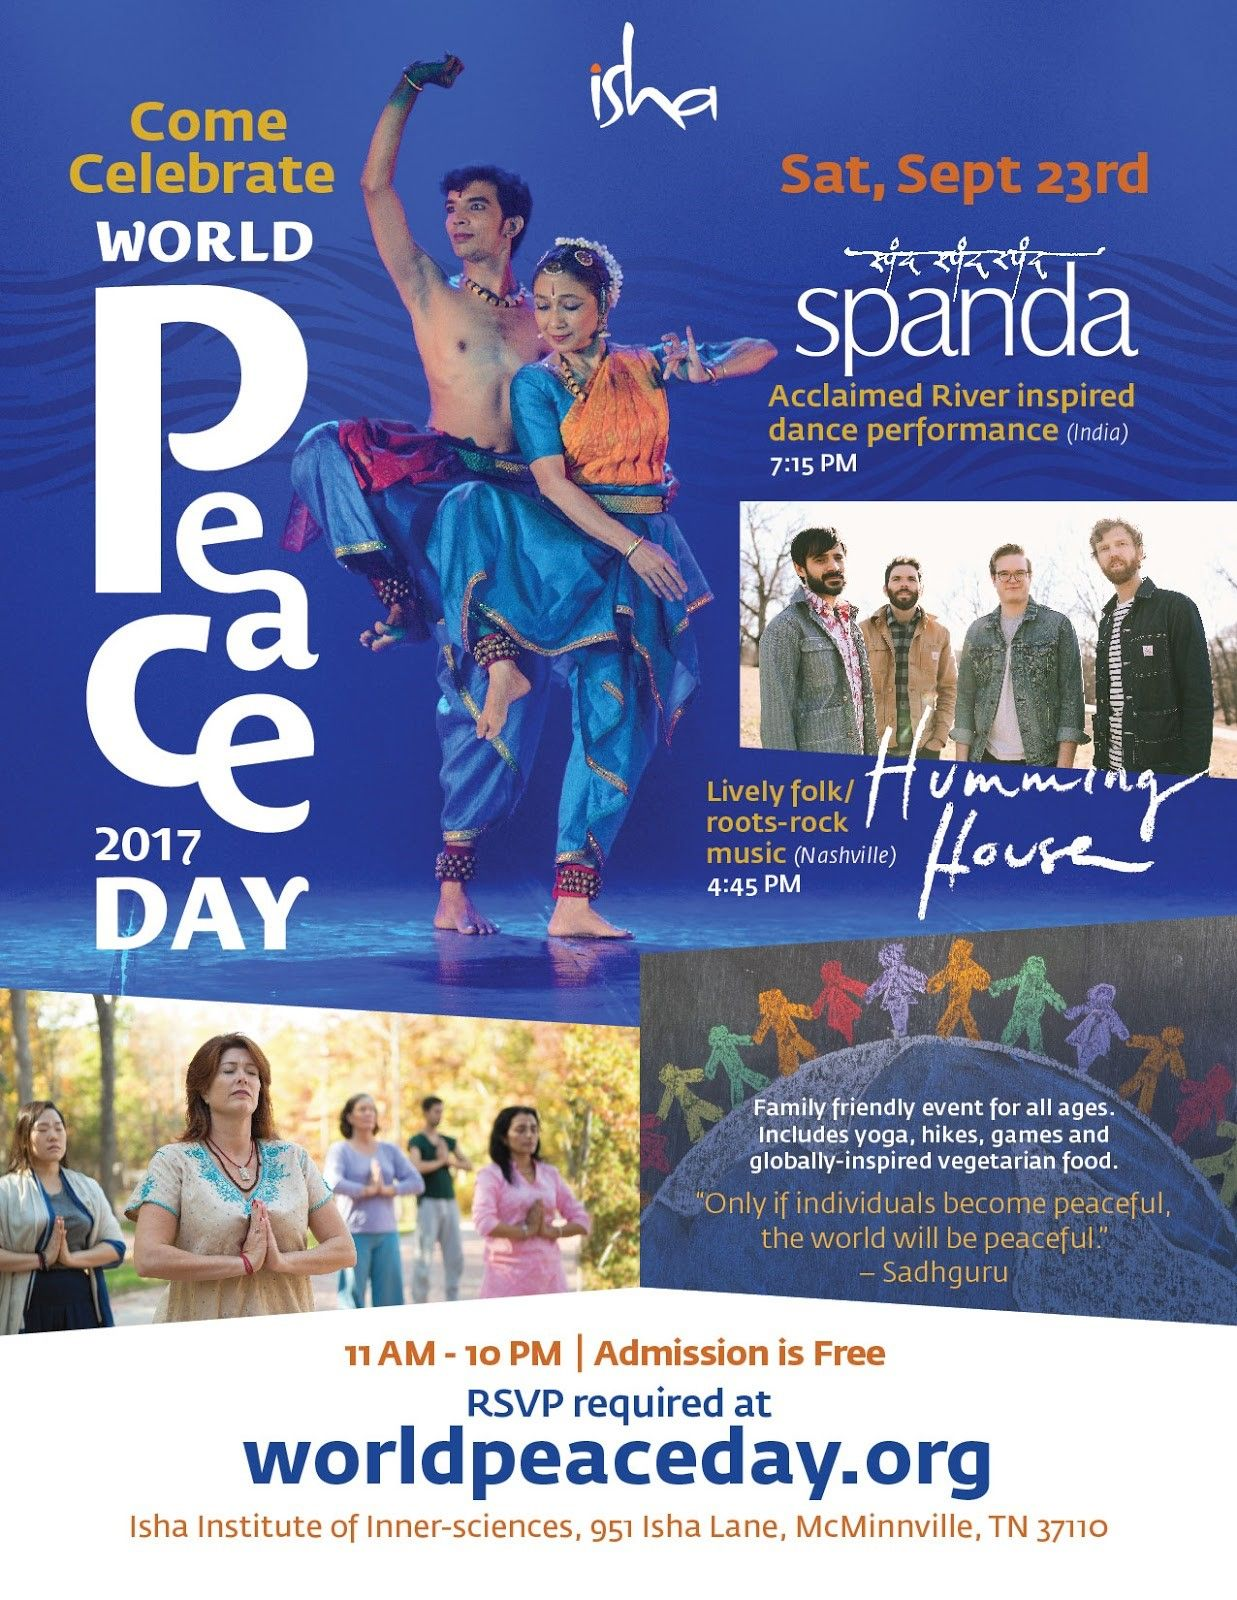 World Peace day Celebrations at the Isha Institute of Inner Sciences on Sep 23,